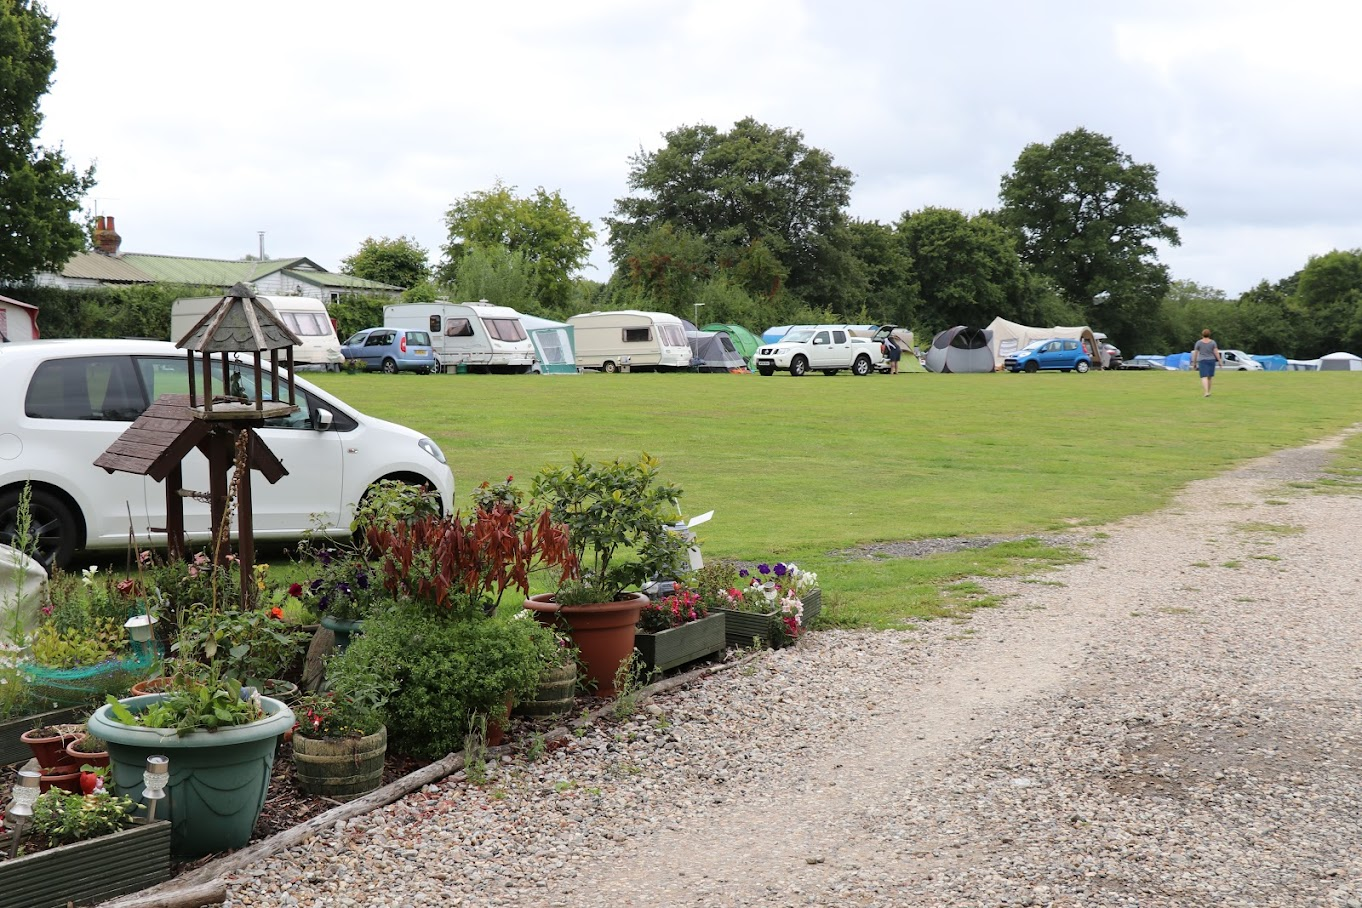 Rother Valley Caravan & Camping Park near Tenterden